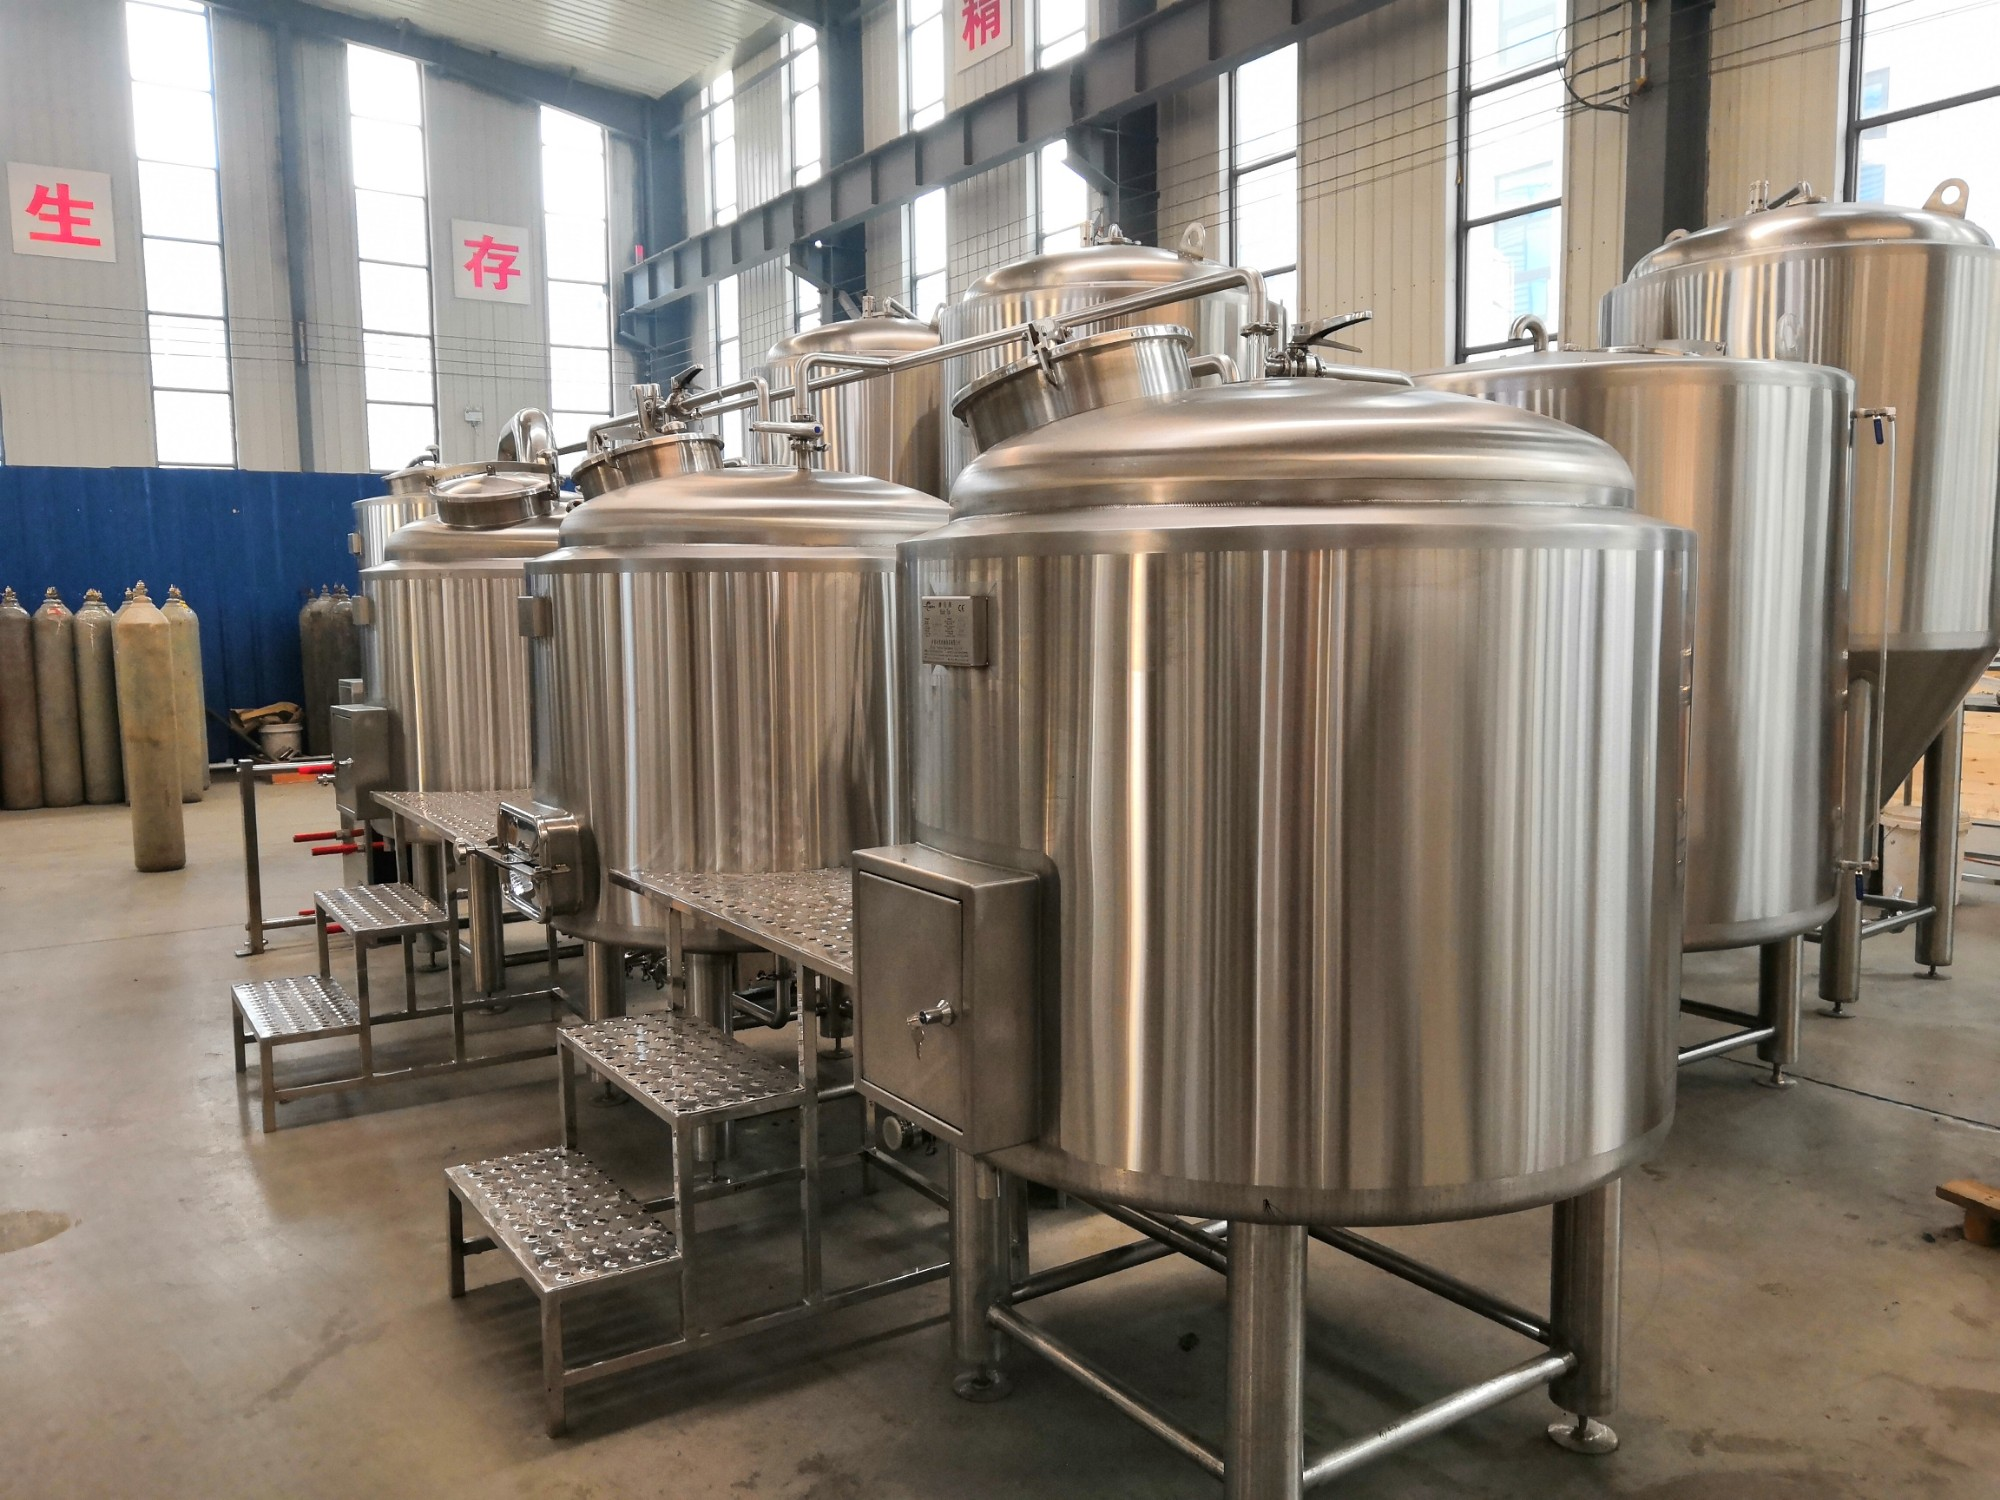 High quality 1000L Beer Equipment 2 Vessels of Brewhouse, 1000L Fermenters, Single Tank Single Quotes,China 1000L Beer Equipment 2 Vessels of Brewhouse, 1000L Fermenters, Single Tank Single Factory,1000L Beer Equipment 2 Vessels of Brewhouse, 1000L Fermenters, Single Tank Single Purchasing